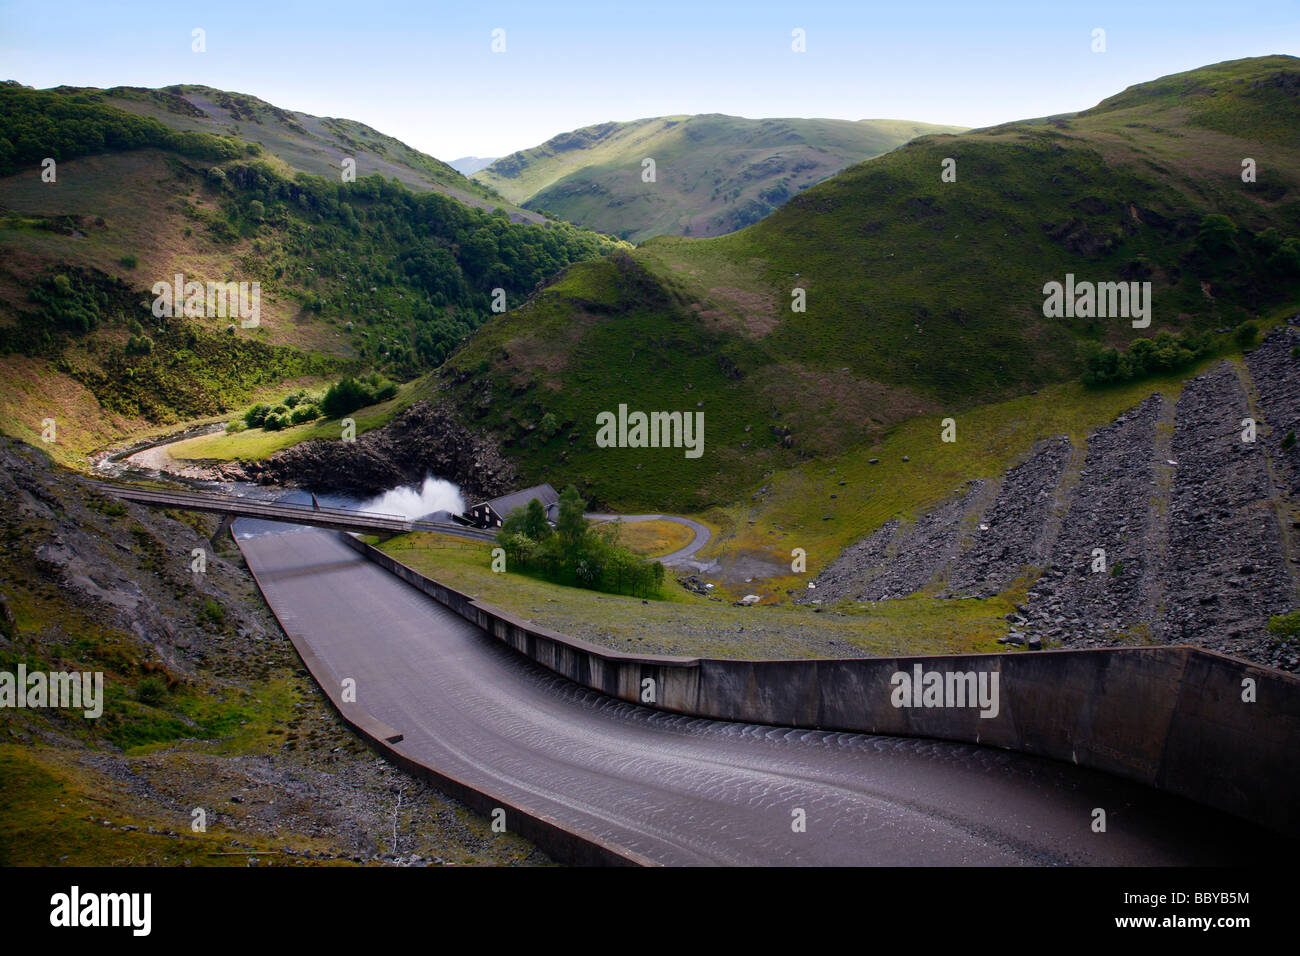 Looking down the concrete slipway on the dam at the end of the Llyn Brianne Reservoir, a man-made lake in the River - Stock Image